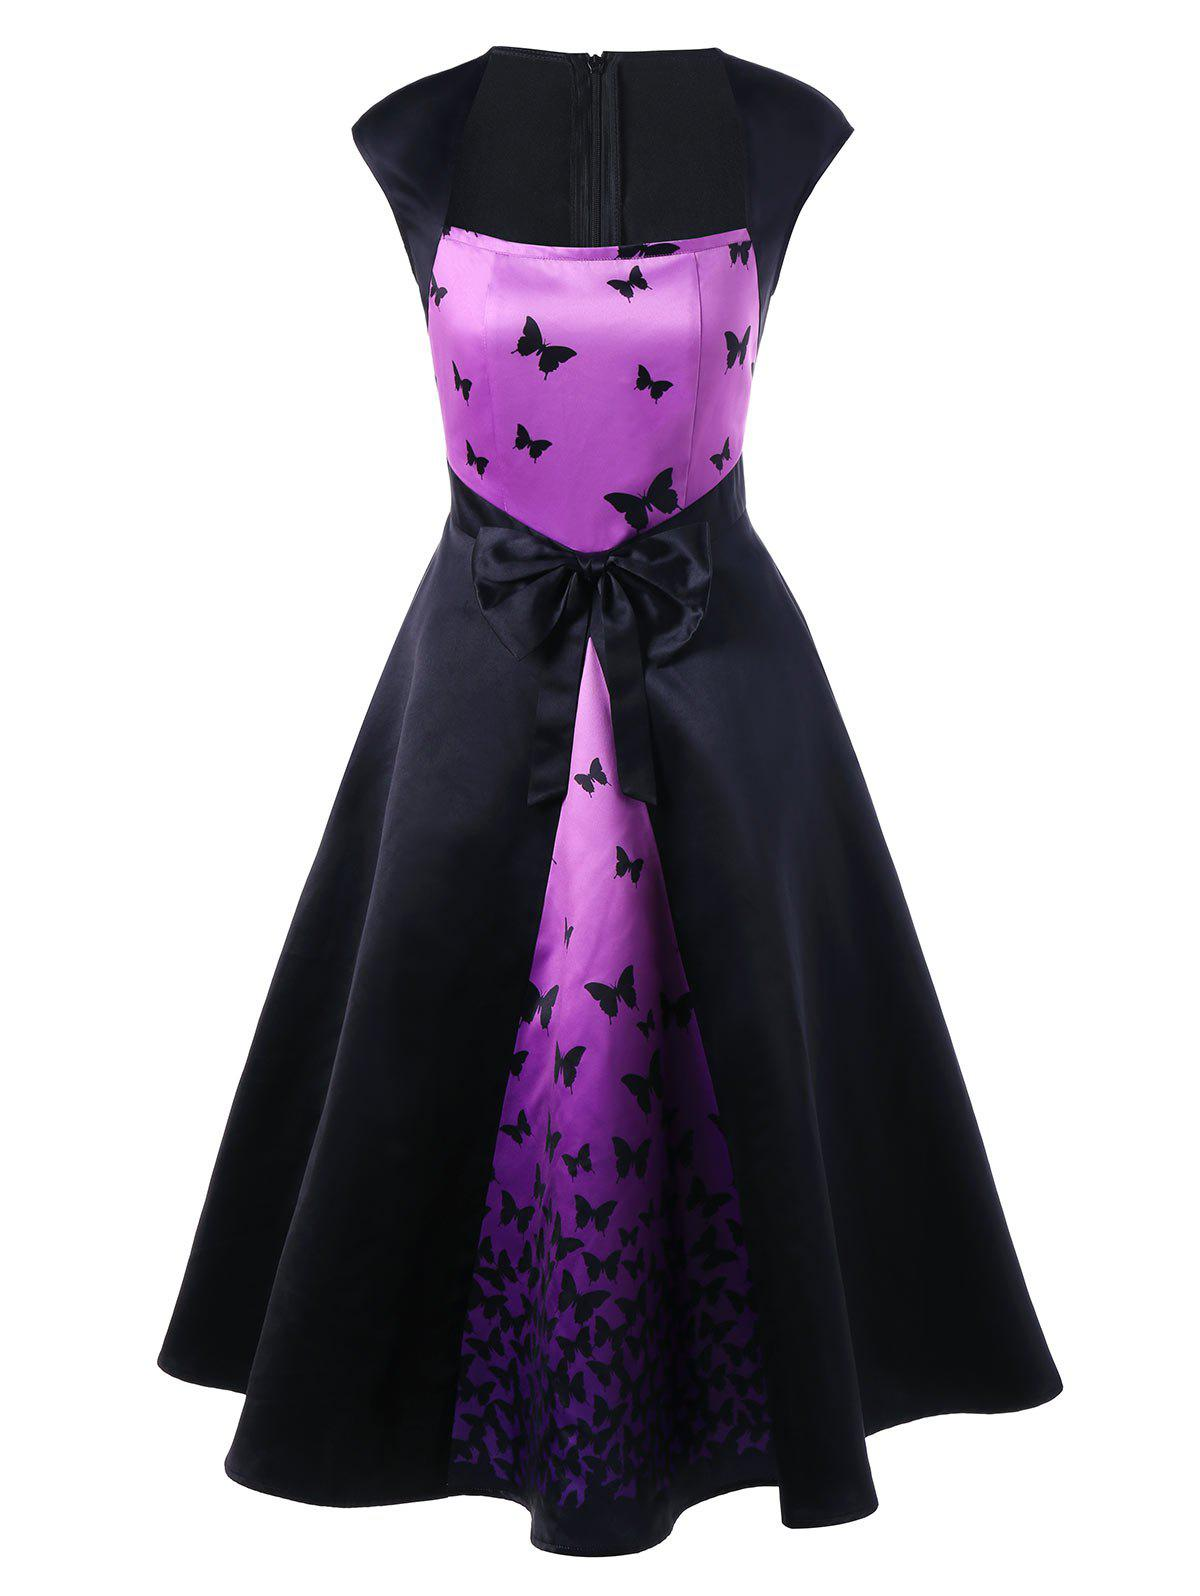 Latest Butterfly Print Bowknot Embellished Square Neck Dress